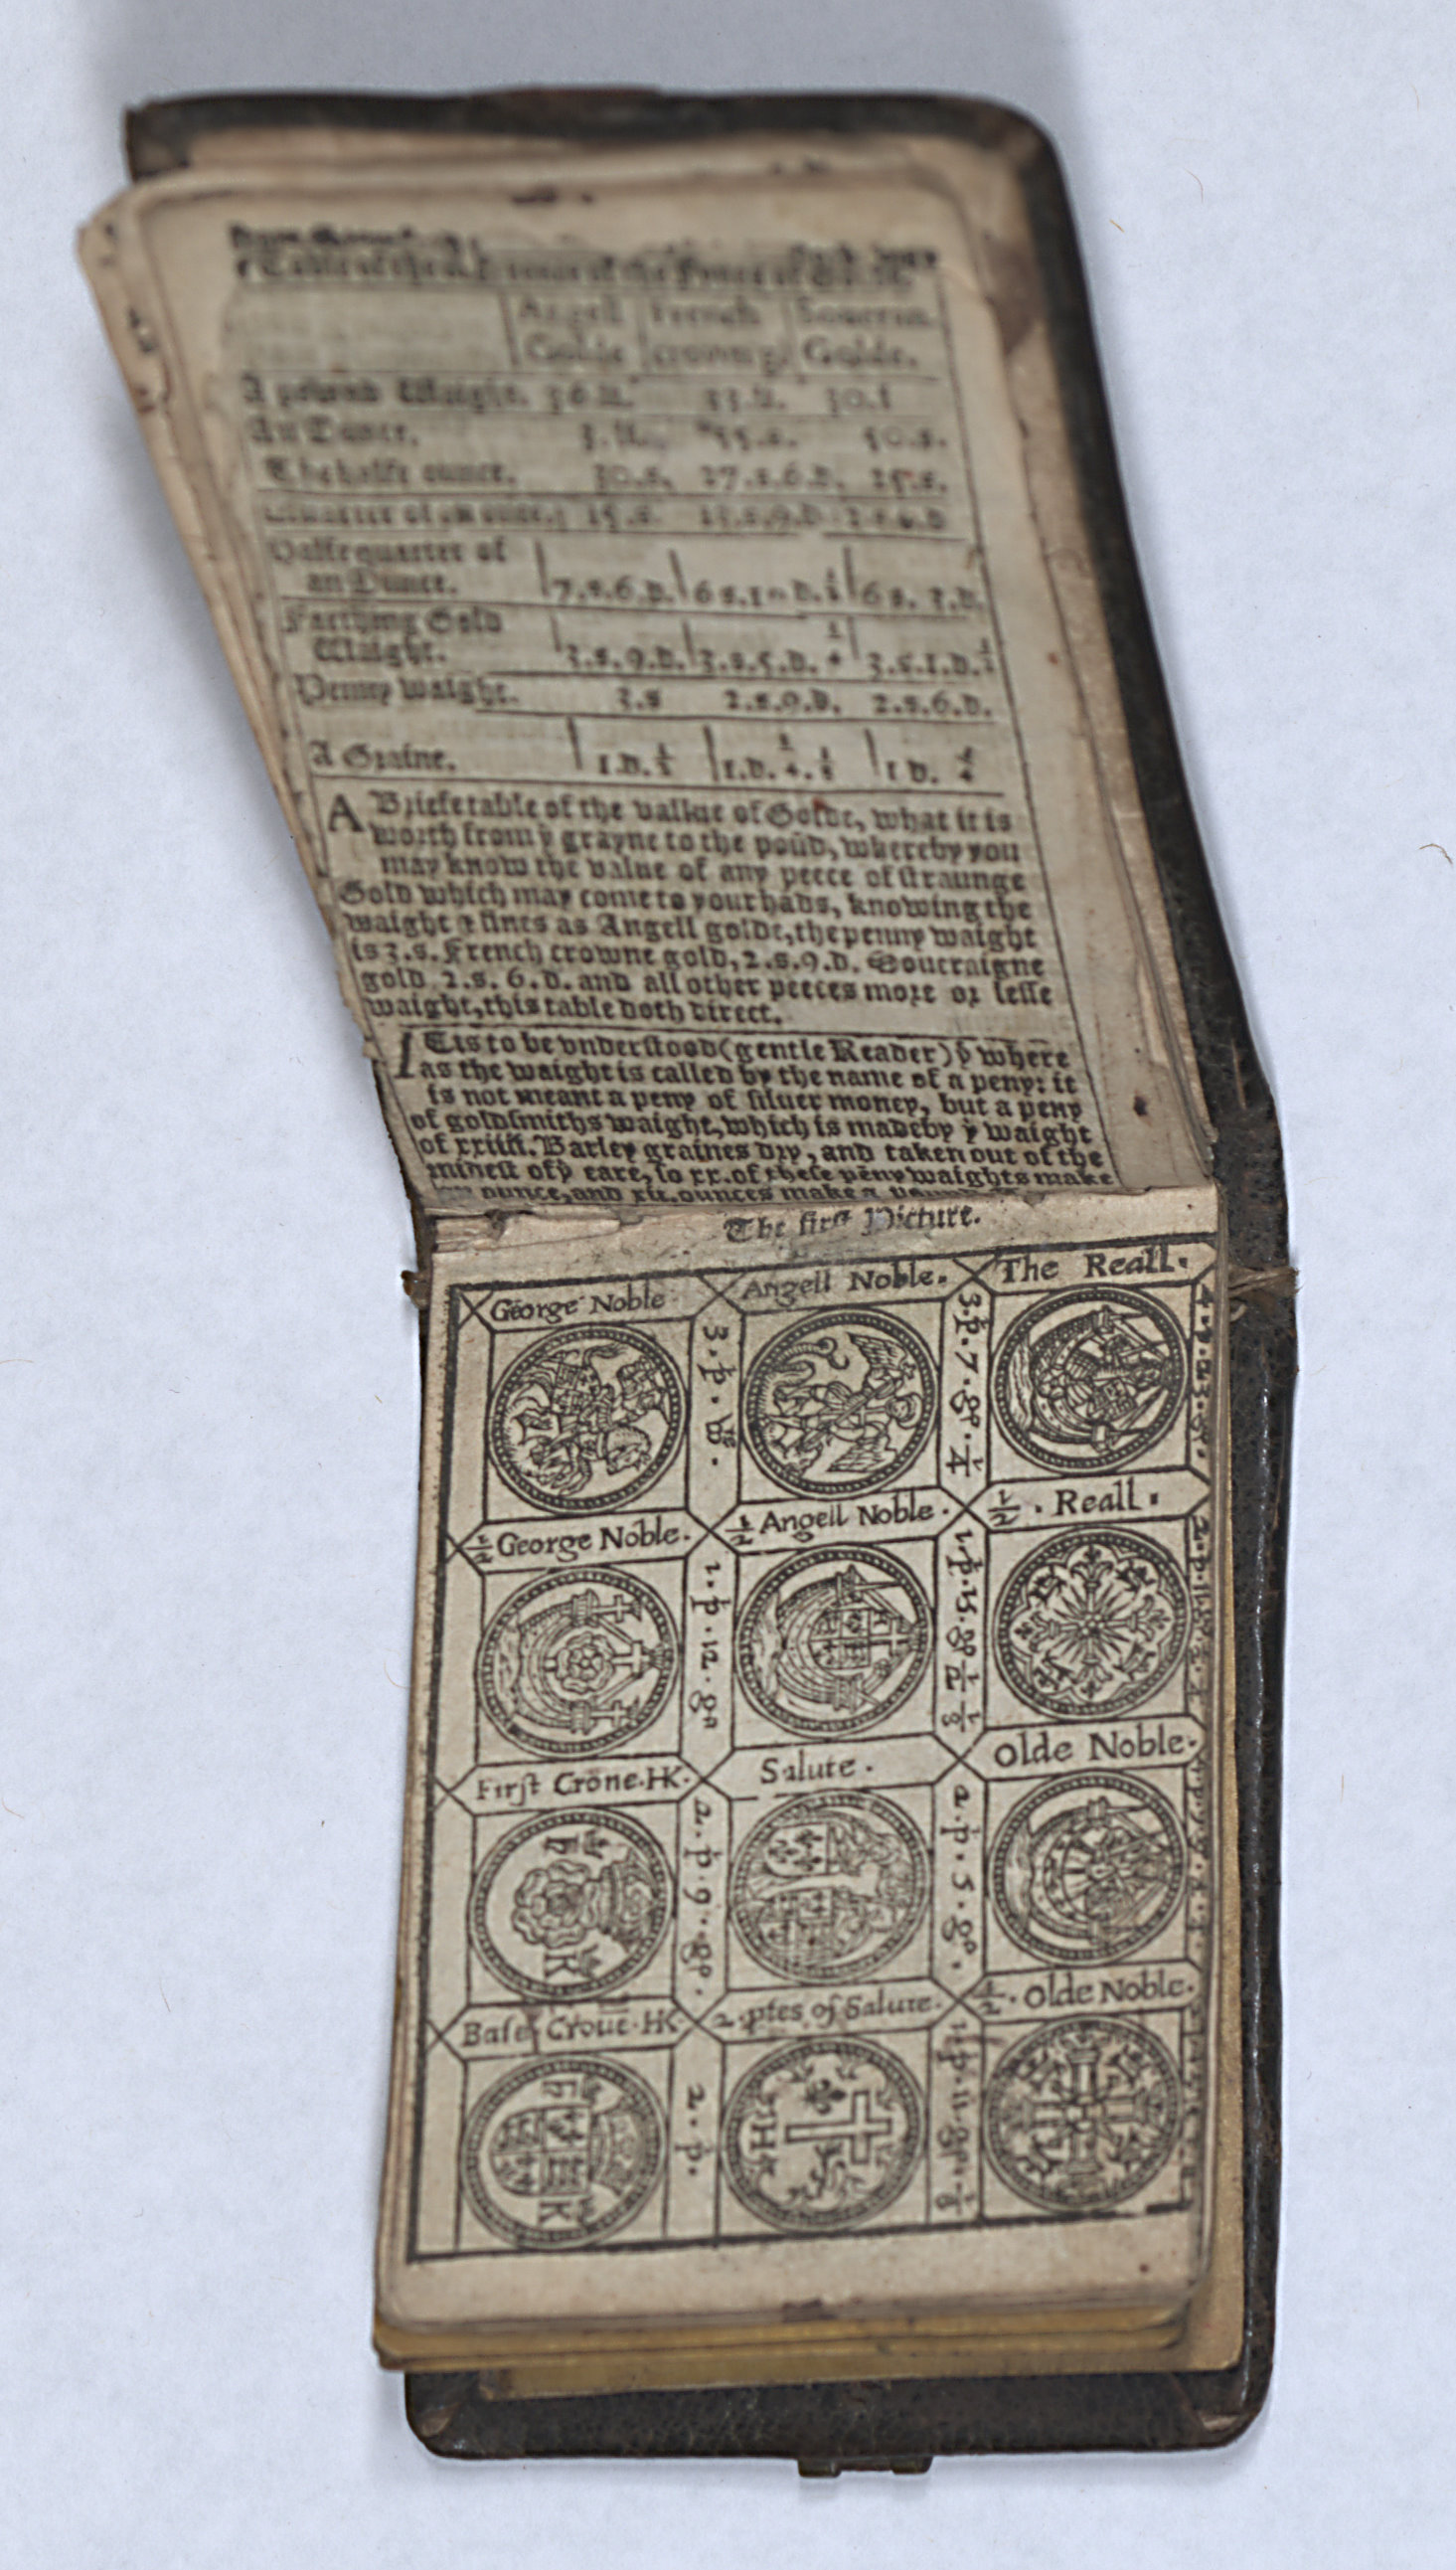 http://blogs.princeton.edu/rarebooks/images/Writing_Table5.jpg